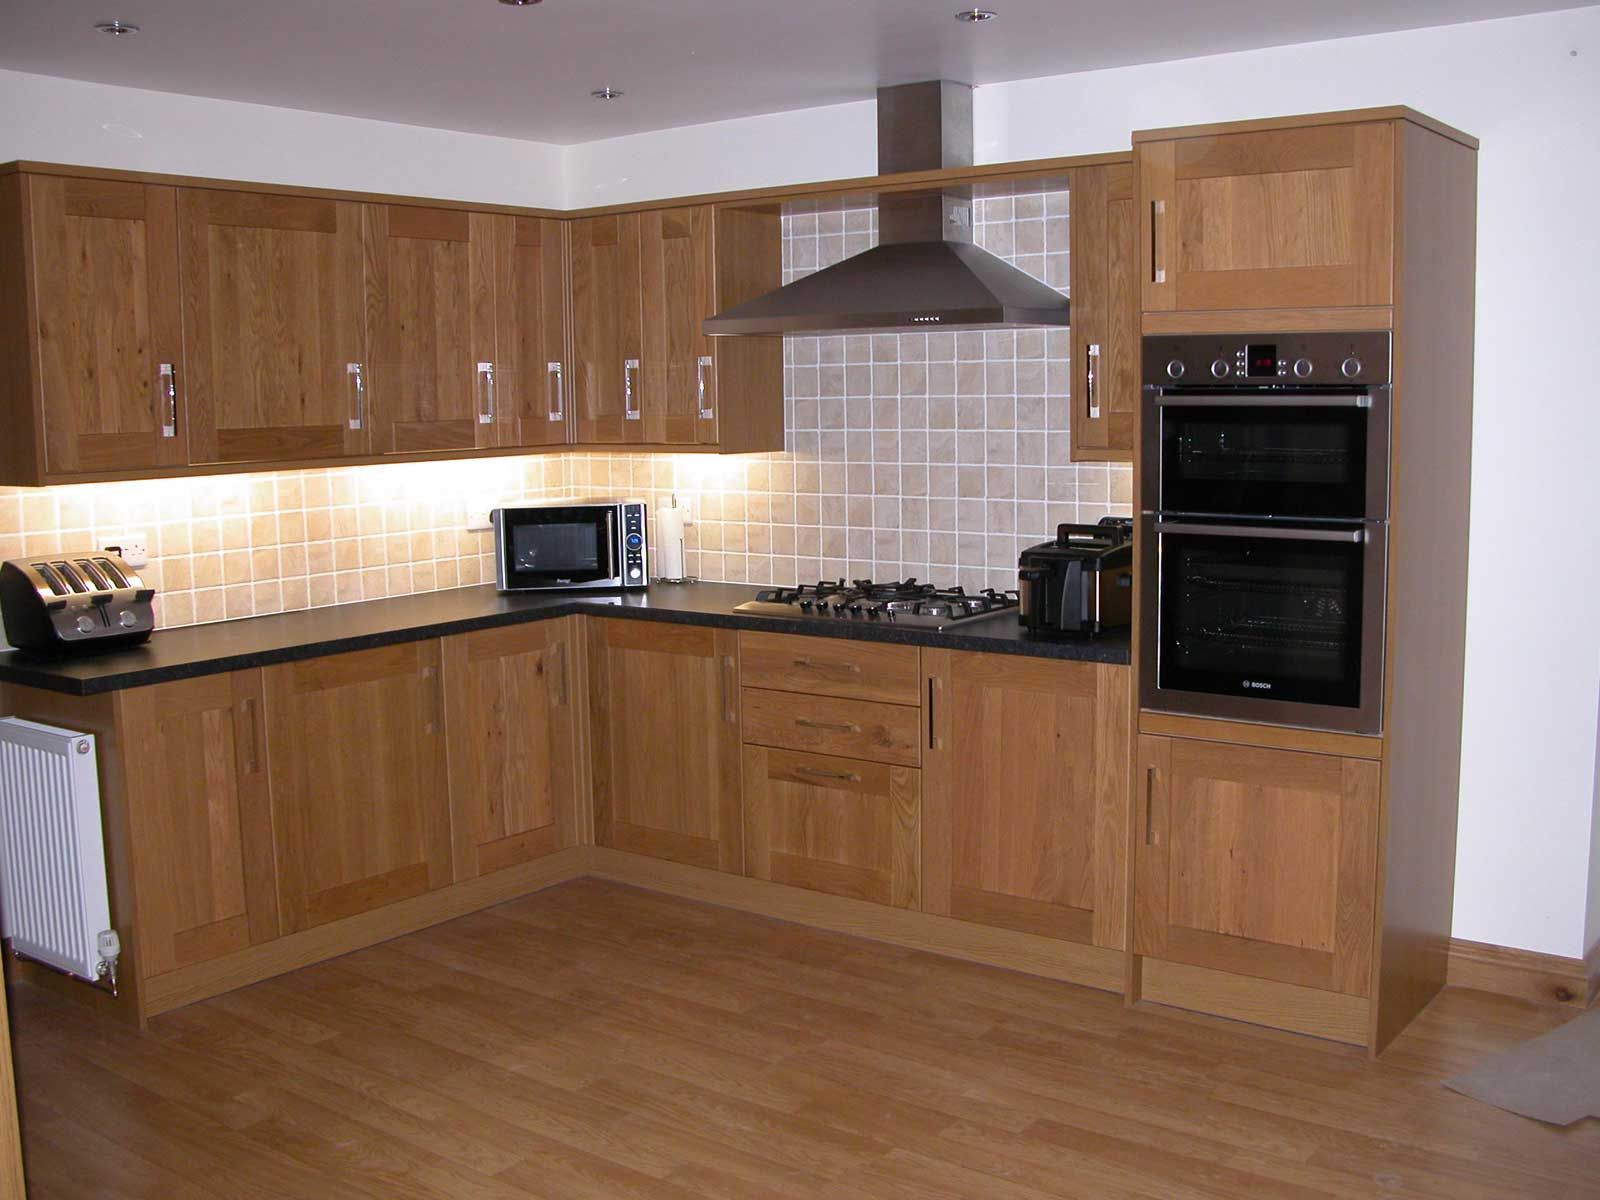 Modern Kitchen Cabinet Doors Replacement kitchen : kitchen interior with modern ceramic backsplash kitchen